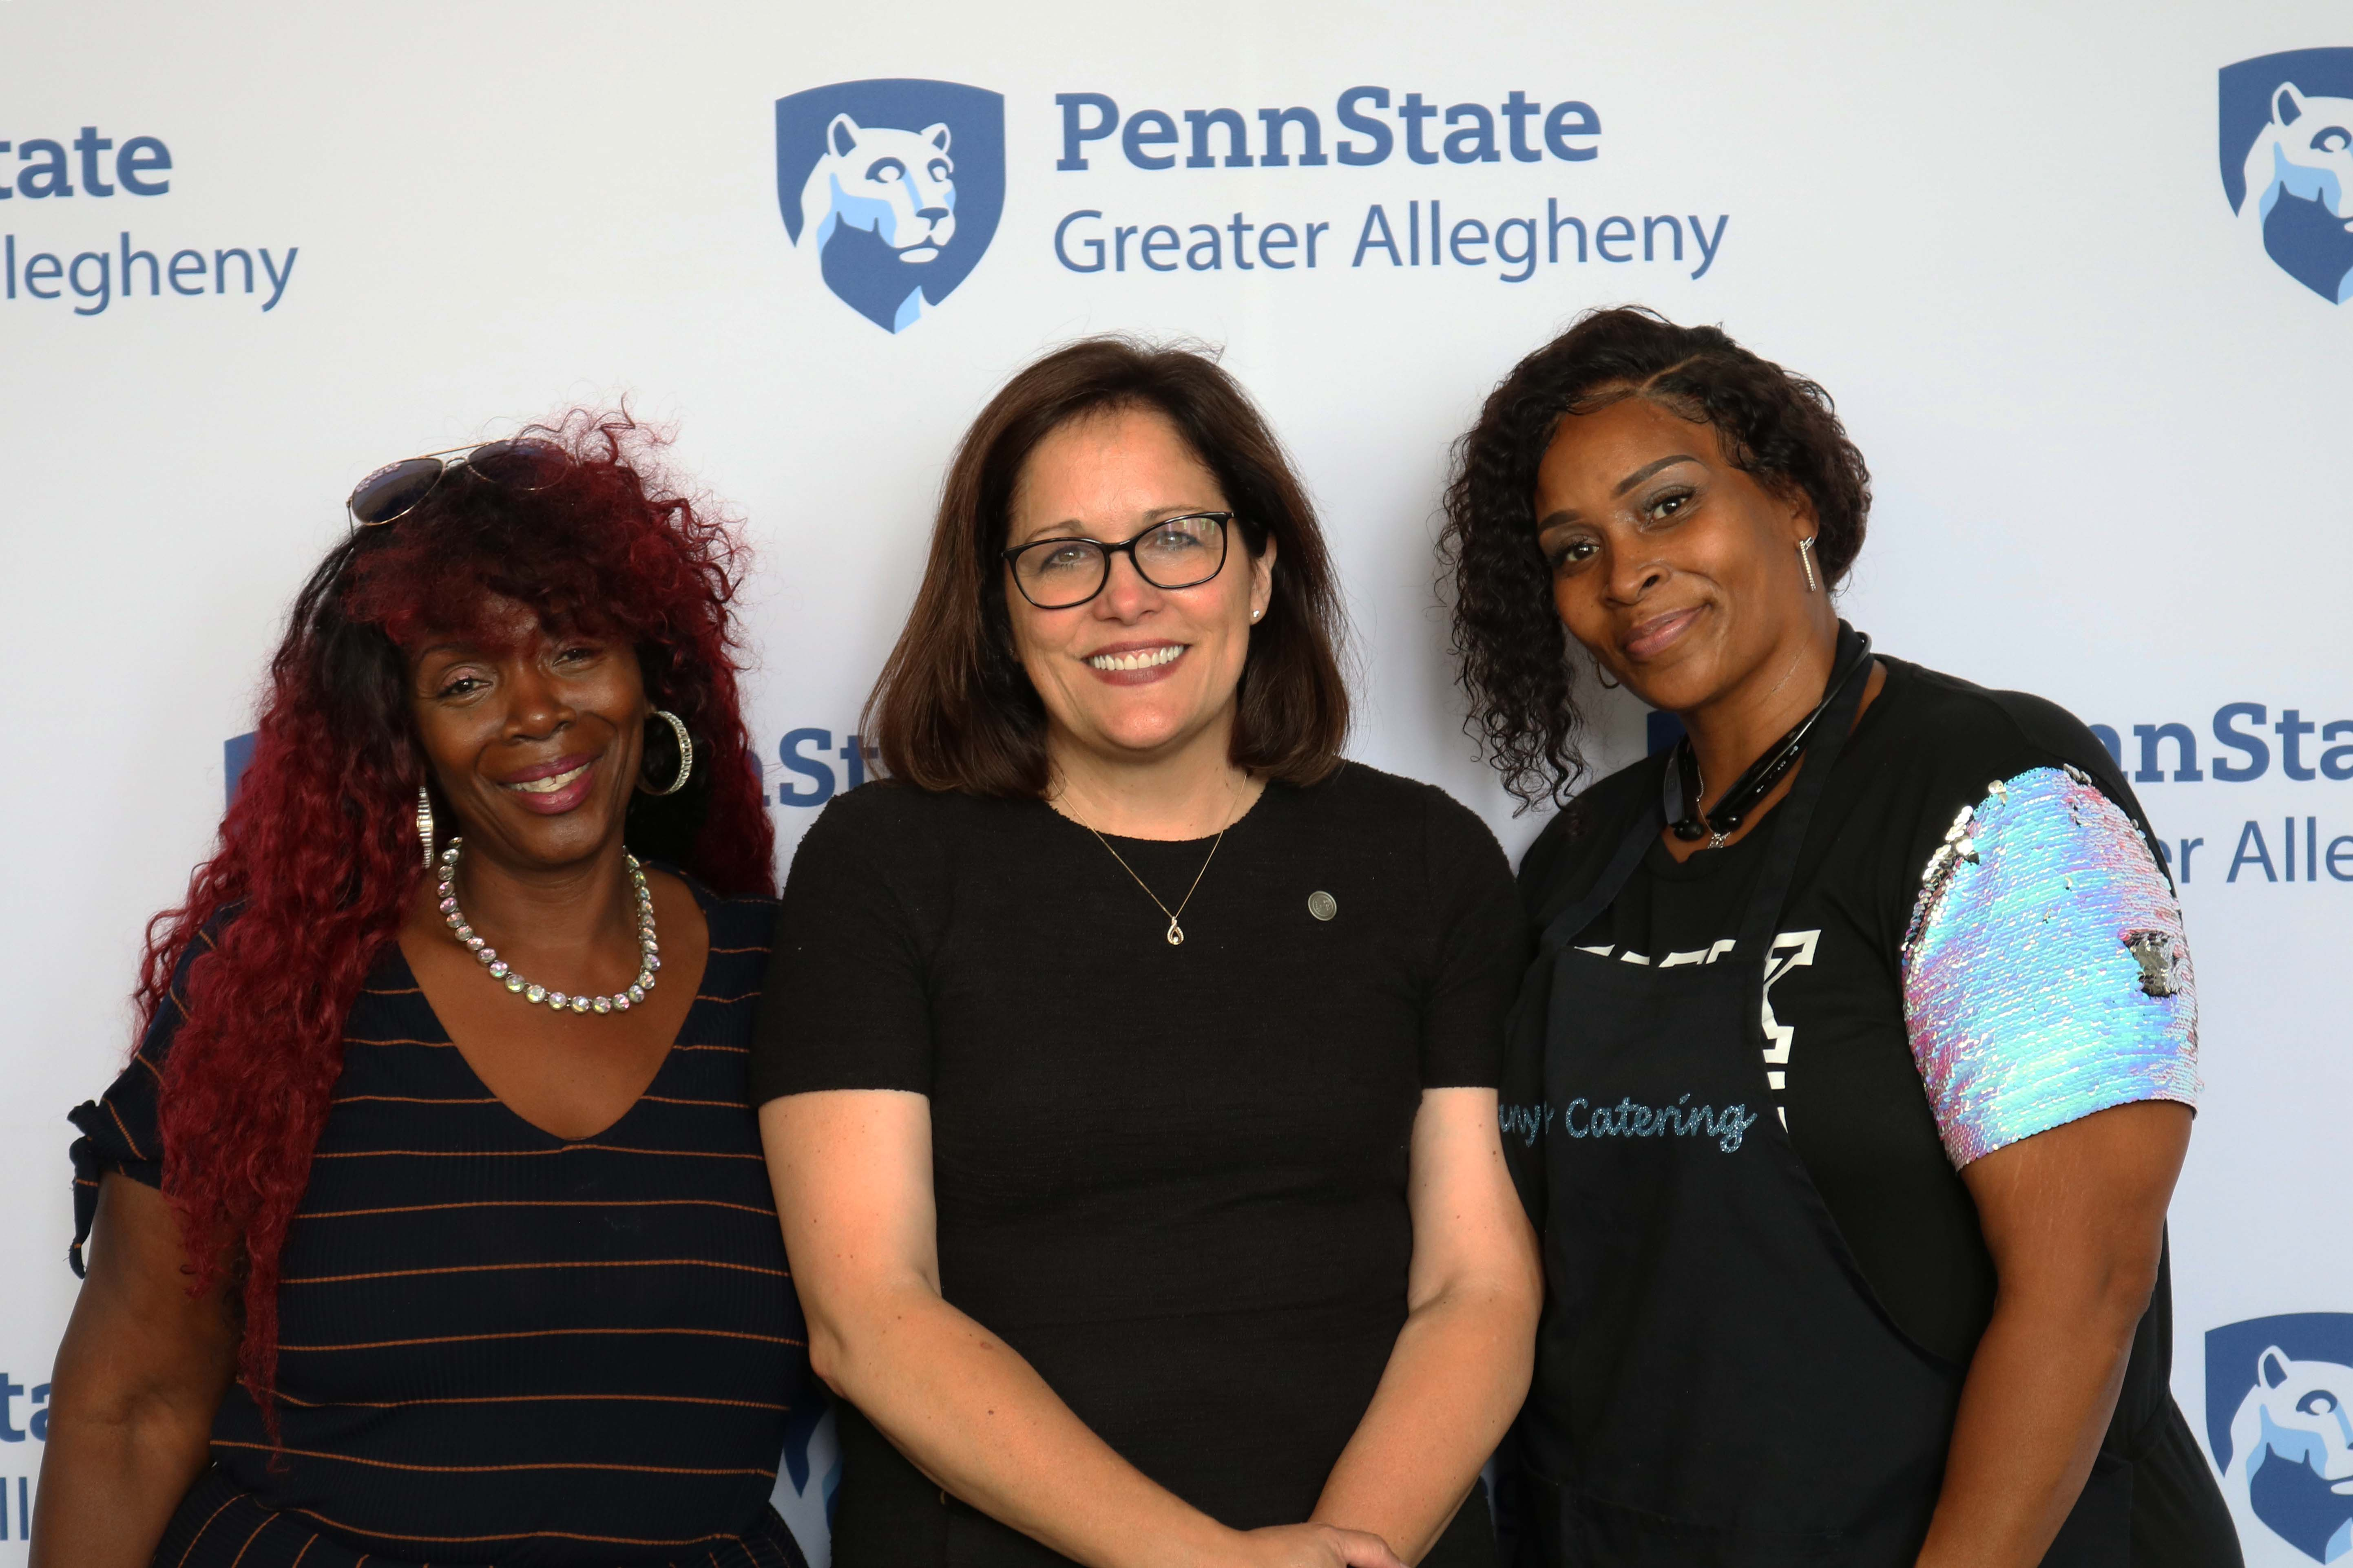 3 women smiling standing in front of Penn State Greater Allegheny Logo